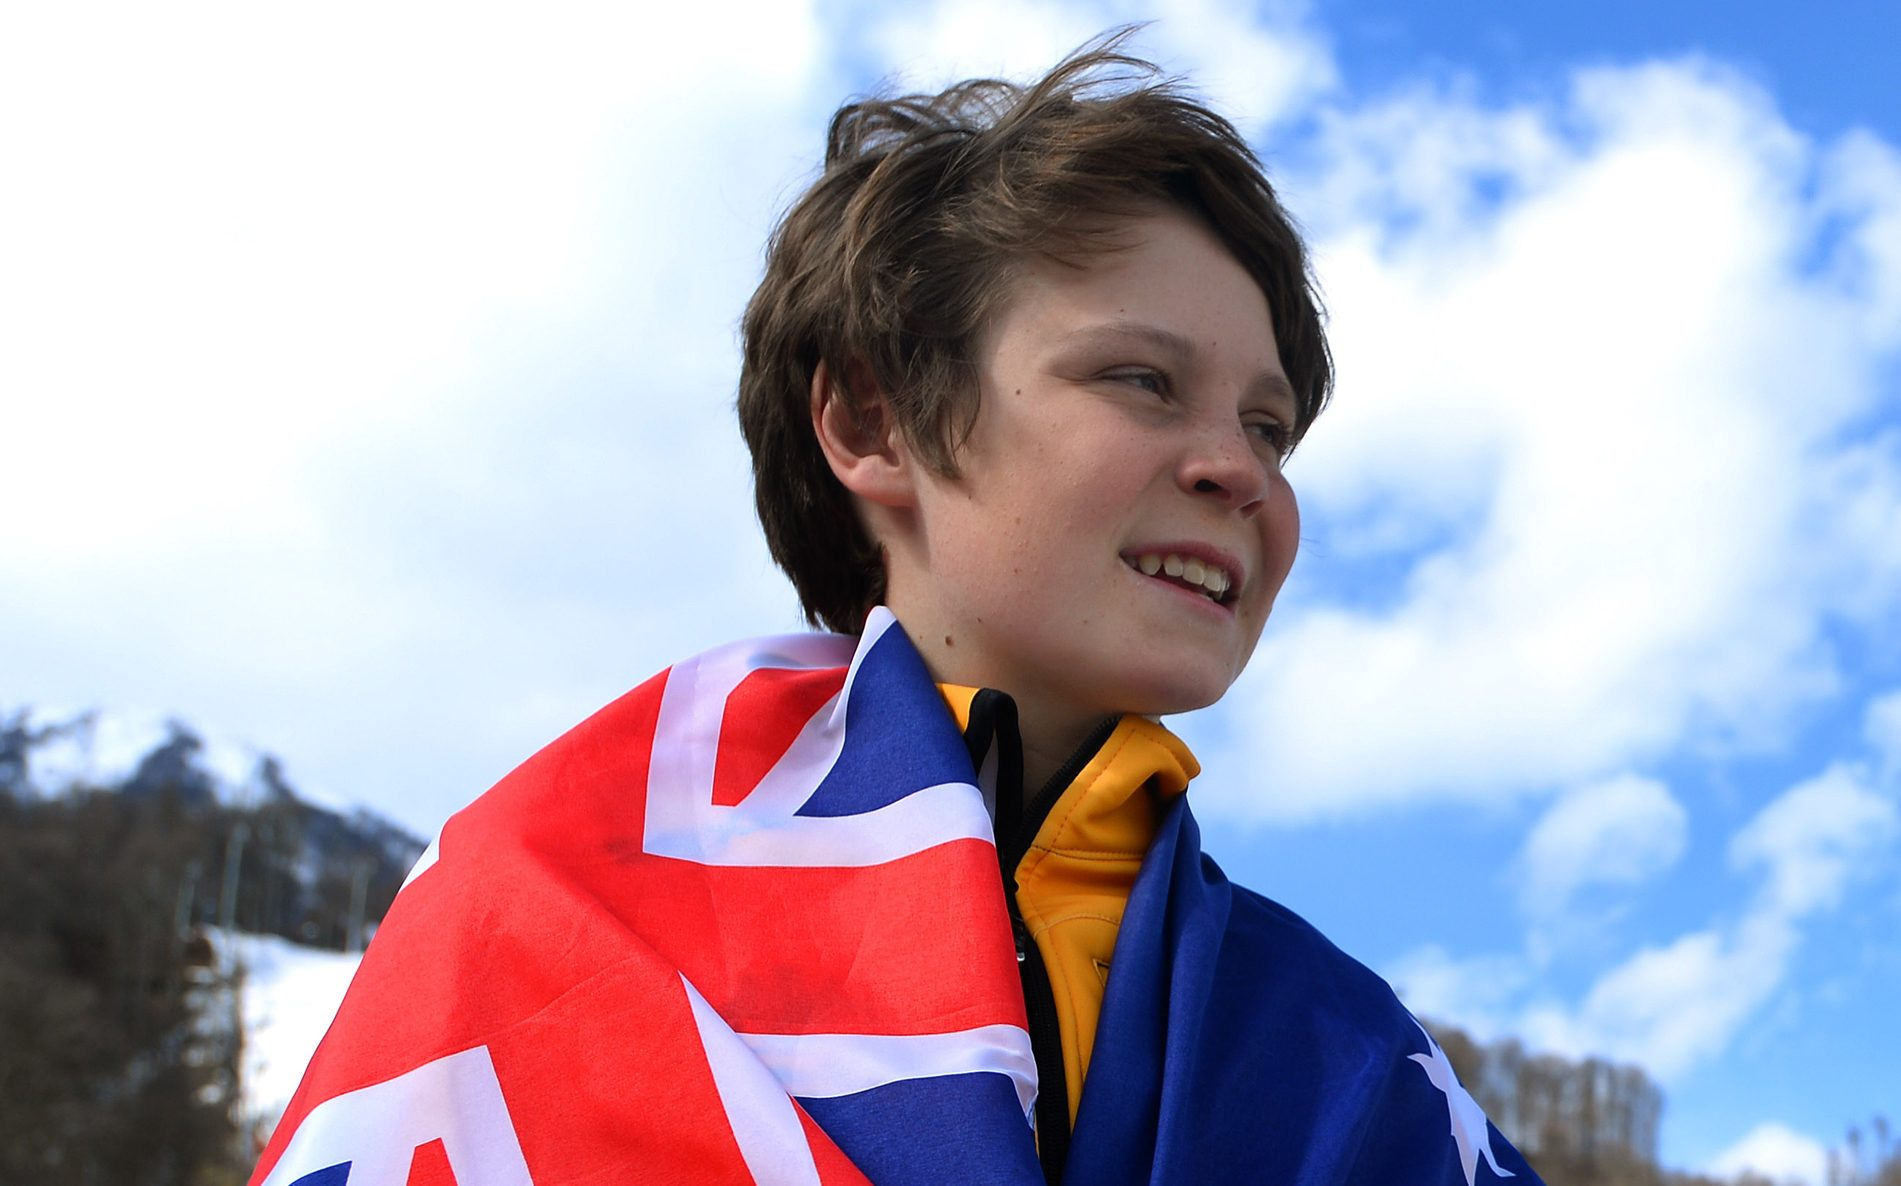 Tudhope to become Australia's youngest flag-bearer